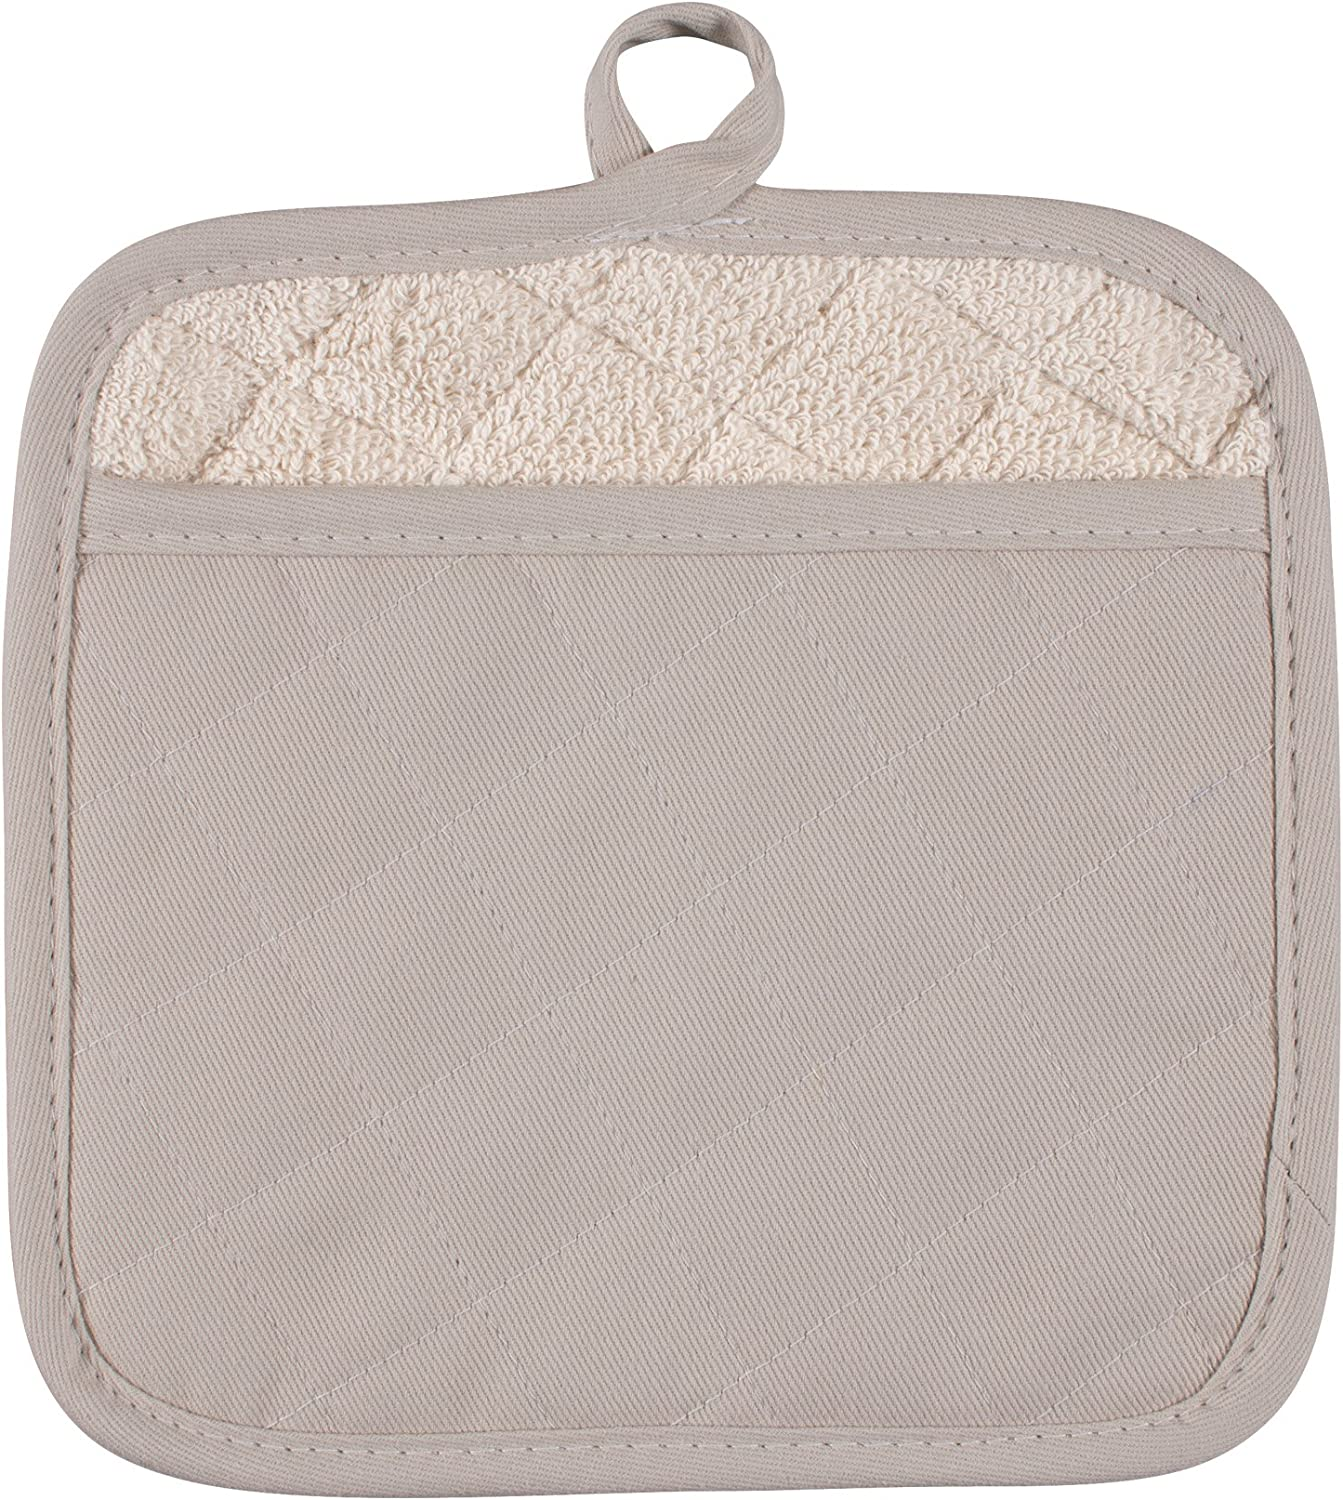 KAF Home Chefs Solid Pot Mitt, Oatmeal, 100% Cotton, Machine Washable, Made in USA